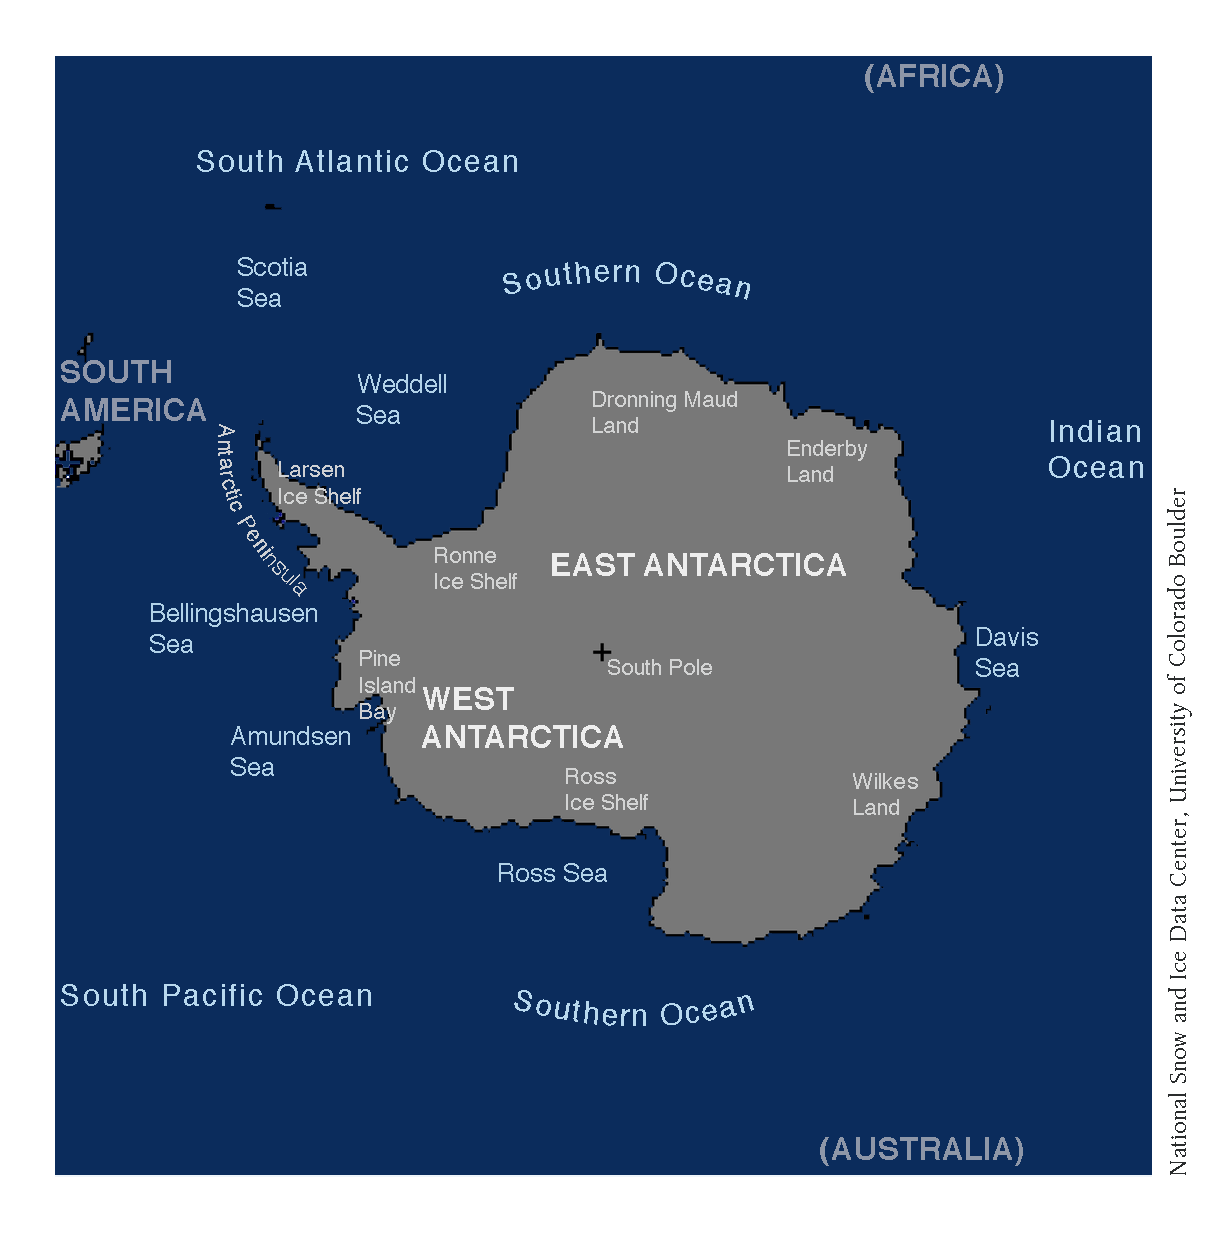 Map of Antarctica | Arctic Sea Ice News and ysis Map Of Antartica on map of western hemisphere, map of ross ice shelf, atlantic ocean, arctic ocean, pacific ocean, map of iceland, north pole, map of italy, map of oceania, map of australia, map of arctic, map of africa, map of pangea, map of south orkney islands, map of antarctic peninsula, map of europe, map of south shetland islands, map of mongolia, south america, map of world, southern ocean, map of the continents, map of earth, map of argentina, map of north pole, north america, map of weddell sea, indian ocean, south pole,